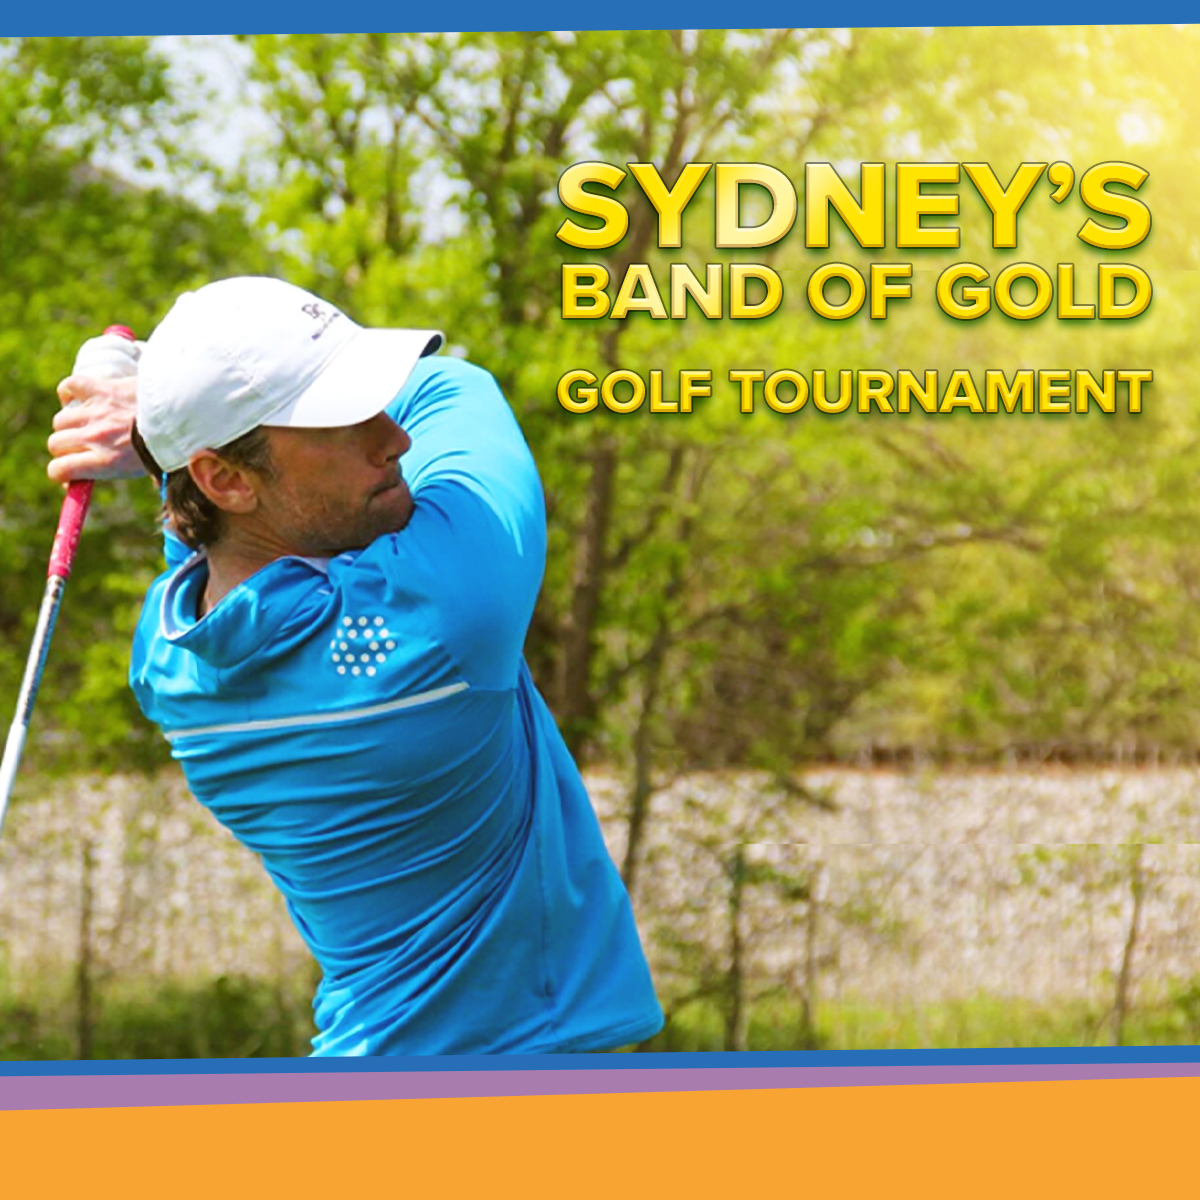 Sydney's Band of Gold Golf Tournament